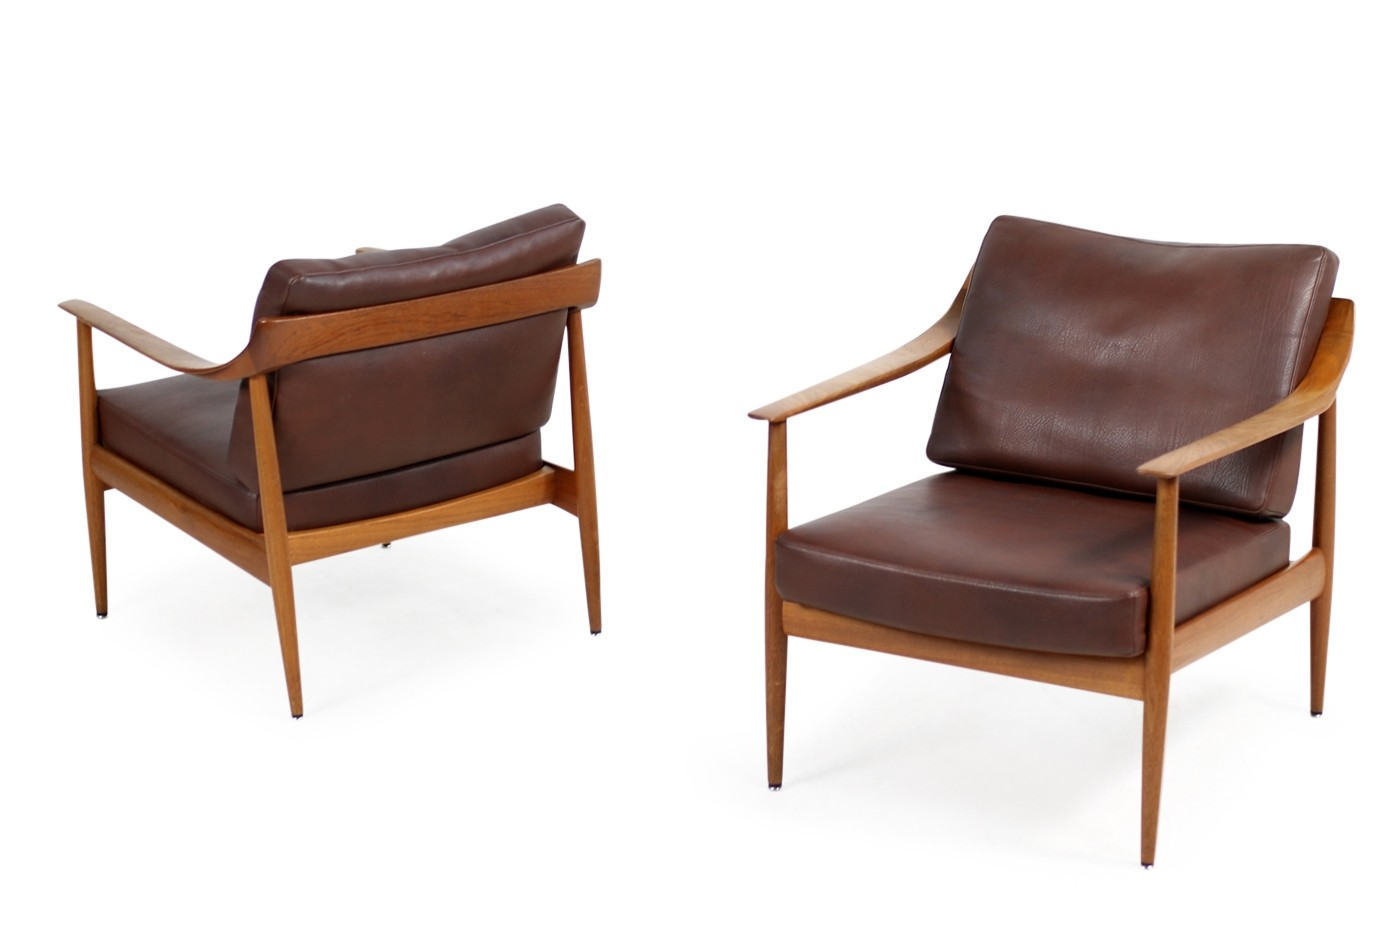 Media Sessel Pair Of 1960s Teak Leather Easy Chairs Knoll Antimott Mid Century